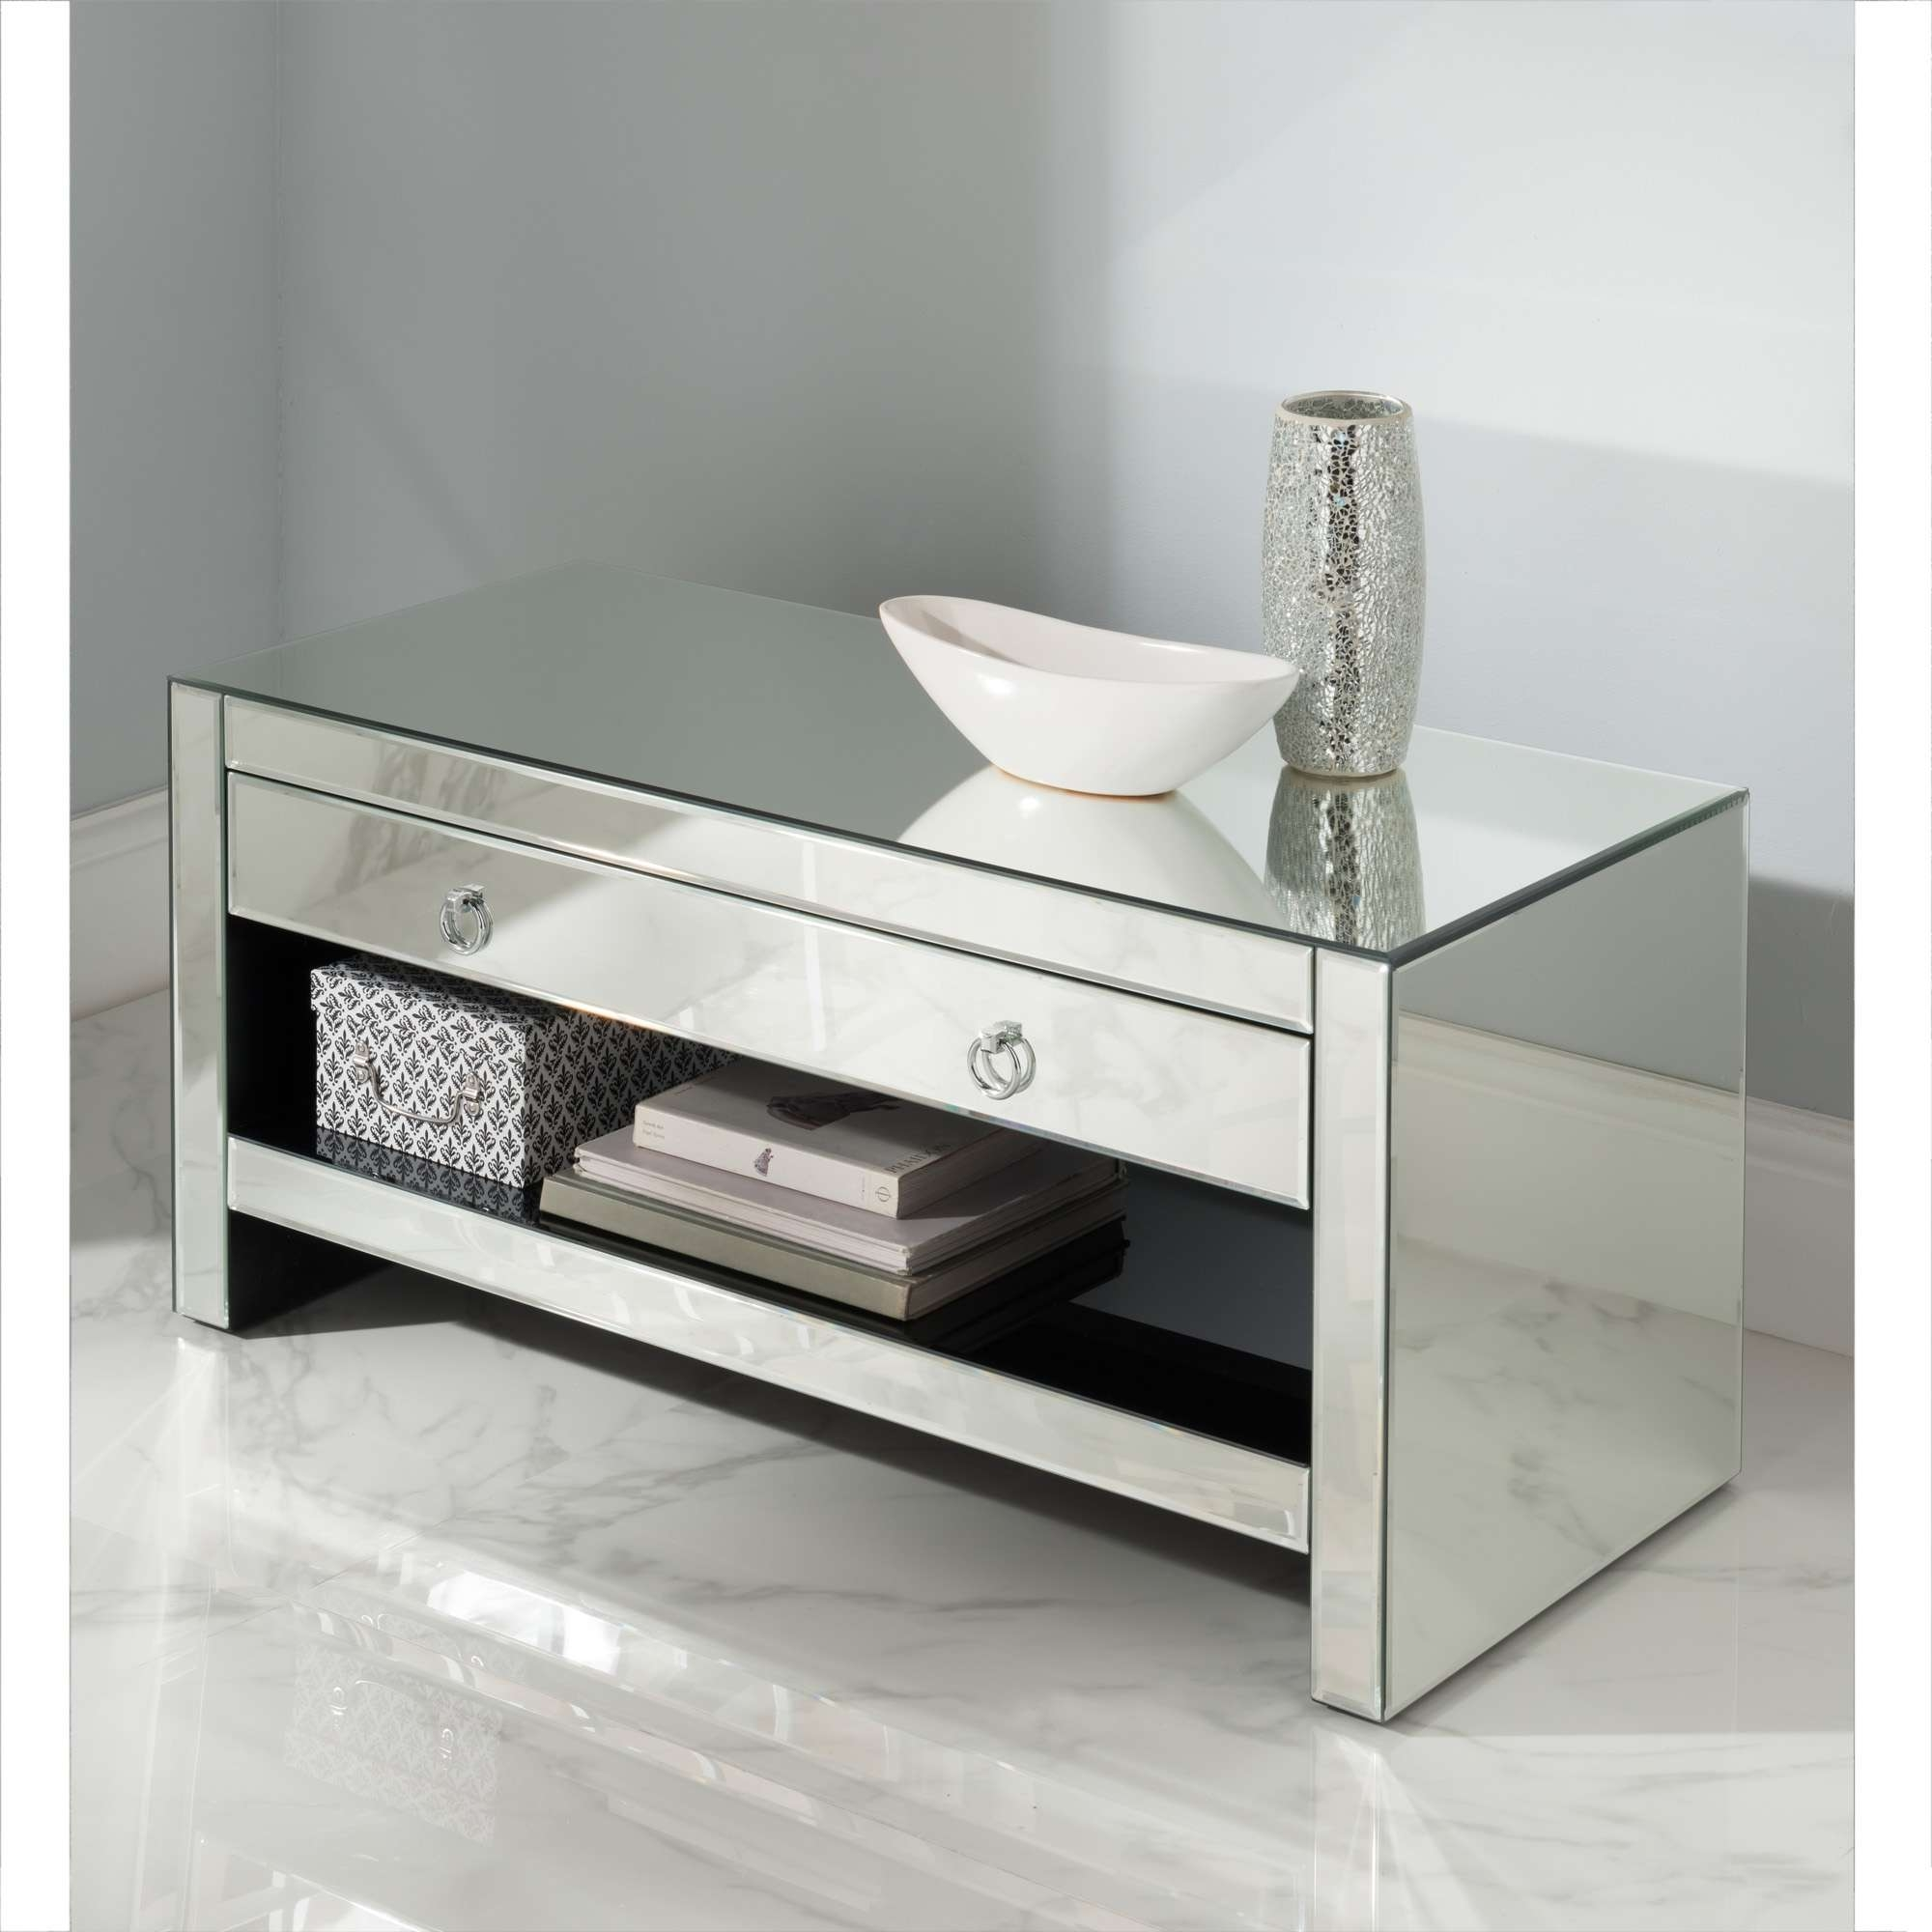 Mirrored Tv Cabinet | Glass Venetian Furniture | Homesdirect365 Within Mirrored Tv Cabinets (View 7 of 20)